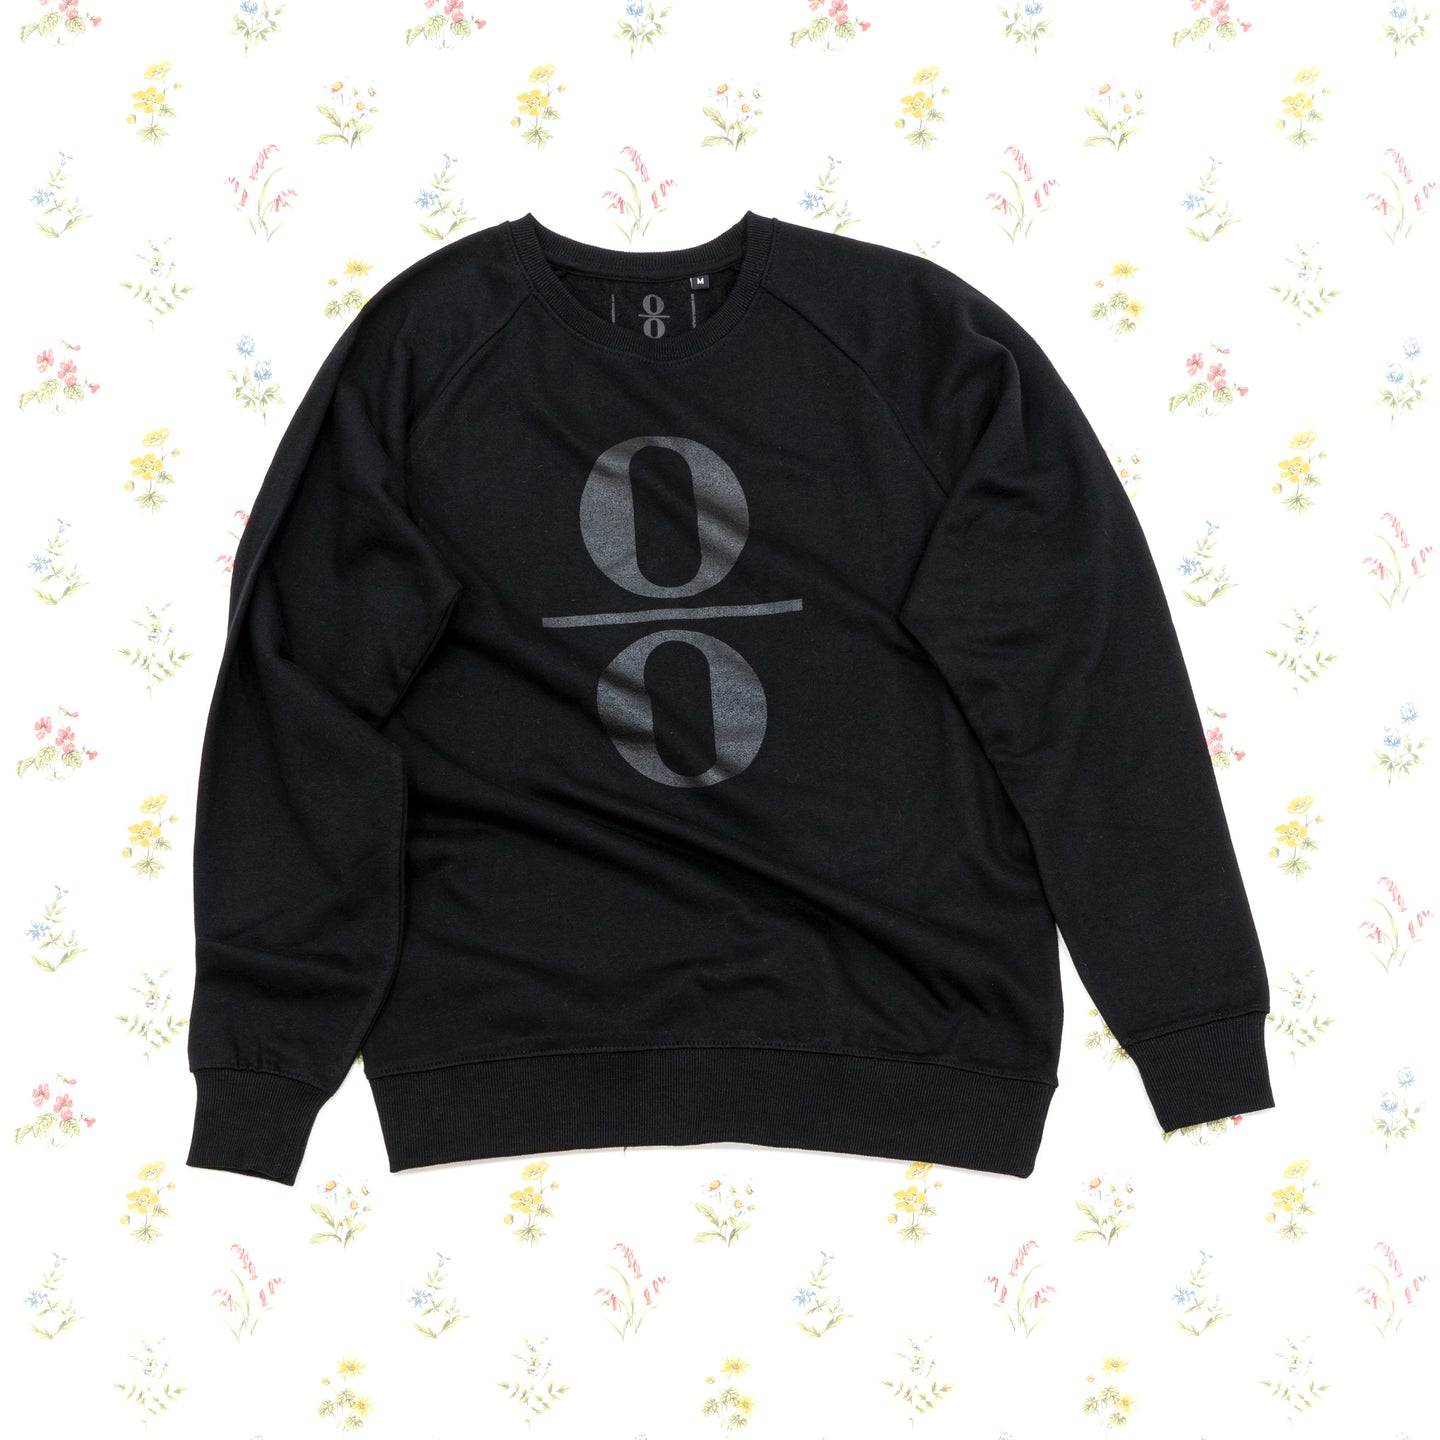 Sweatshirt Black with Black Logo